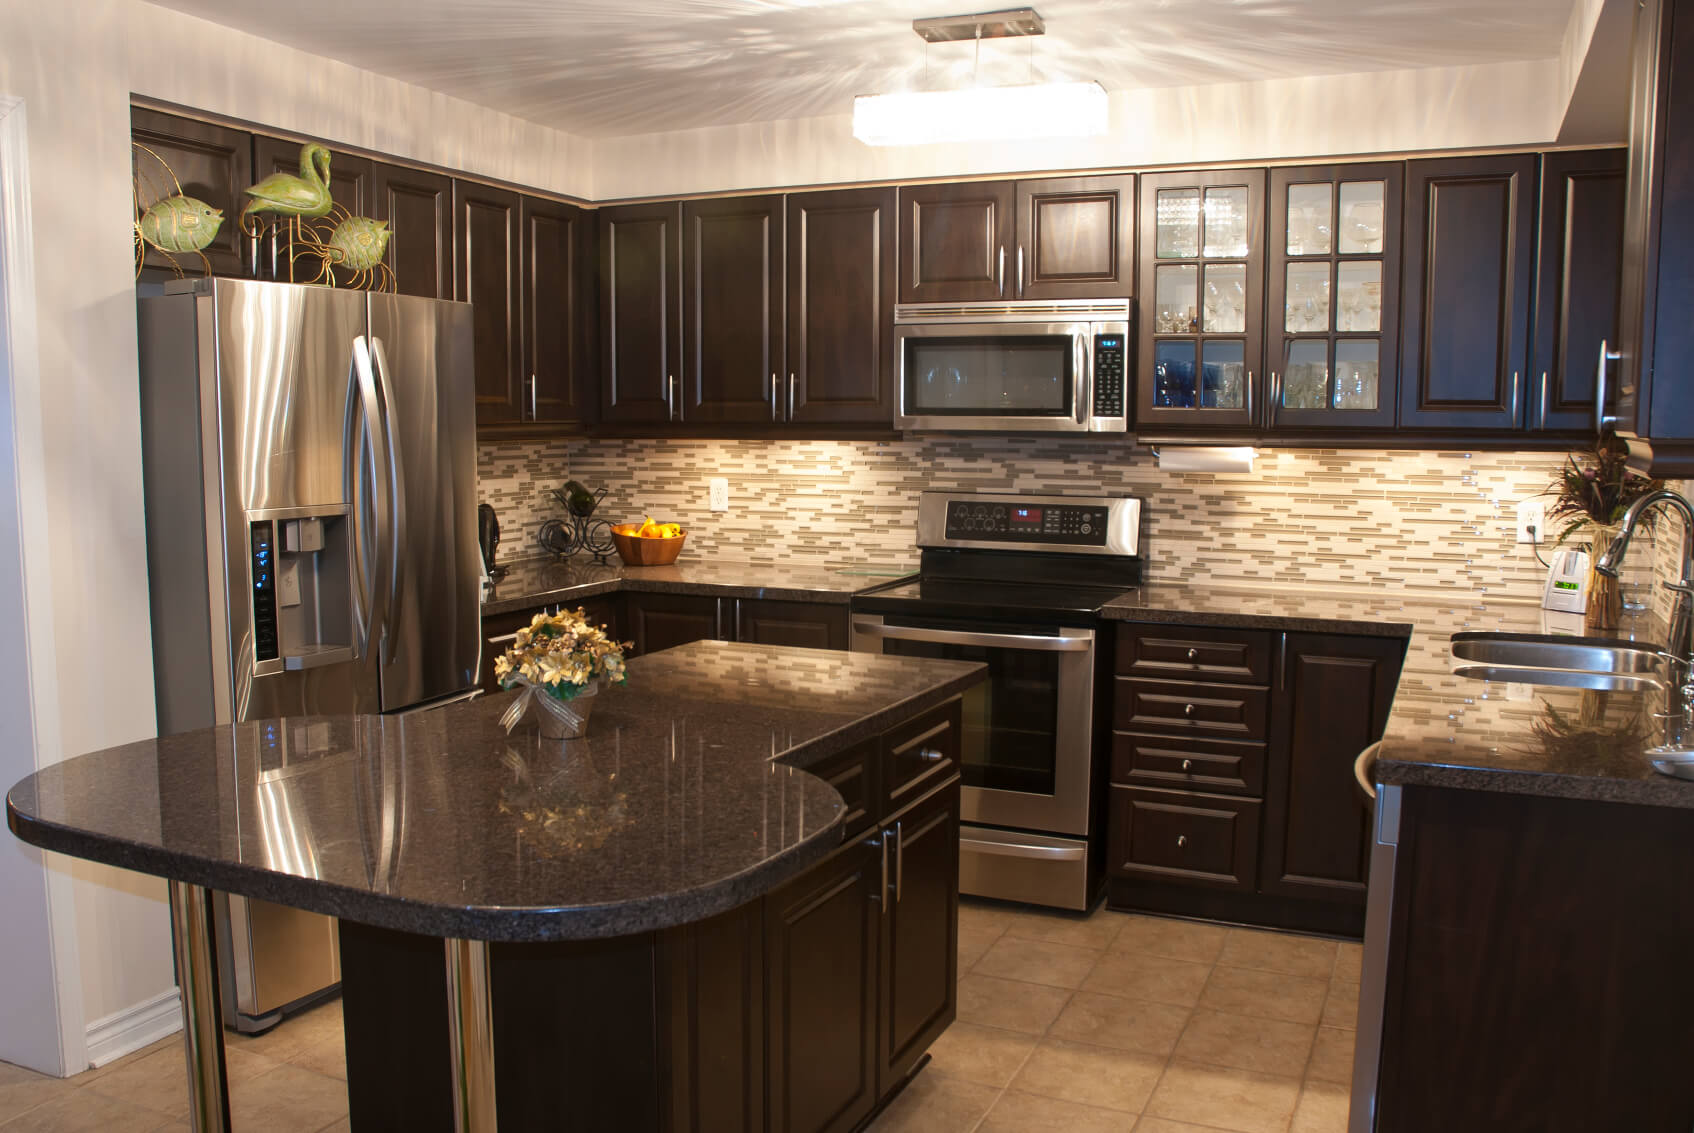 Cozy kitchen is stuffed with dark wood cabinetry, with brushed metal hardware. Black marble countertops and patterned tile backsplash, plus aluminum appliances, add contrast.